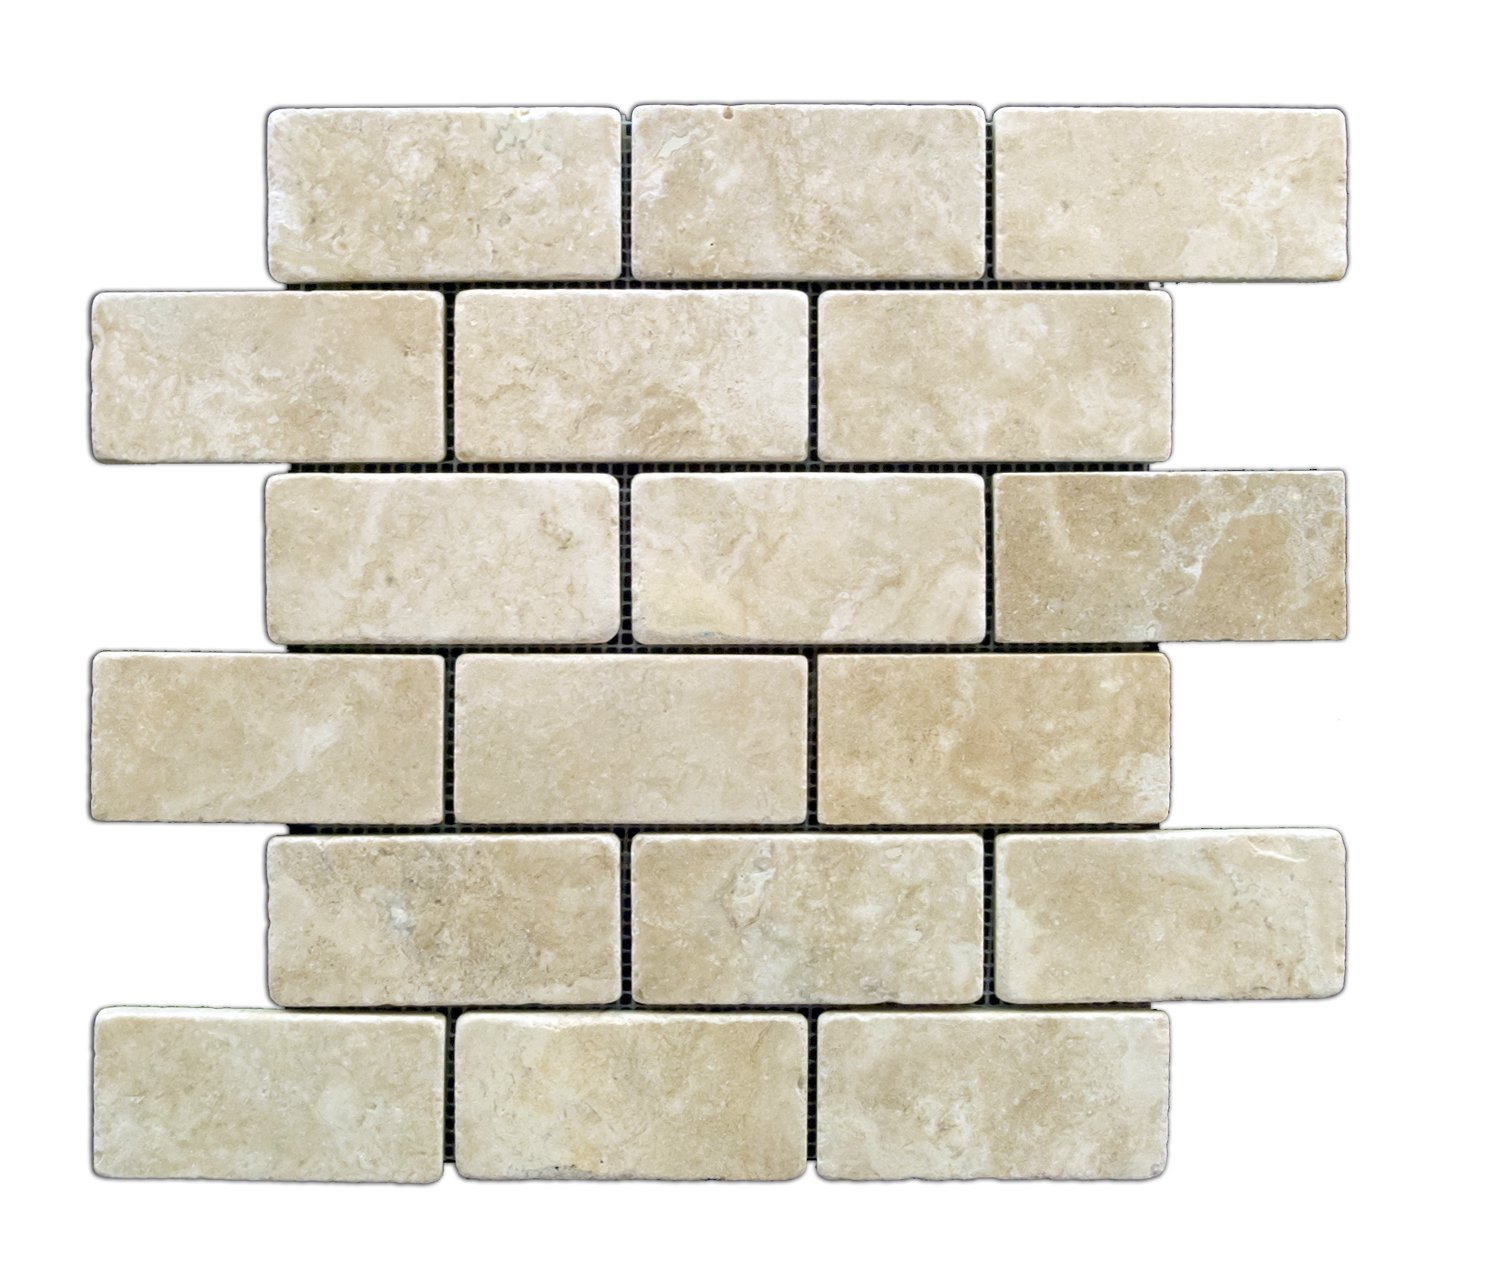 Durango cream 2 x 4 tumbled travertine brick mosaic tile 6 x 6 durango cream 2 x 4 tumbled travertine brick mosaic tile 6 x 6 sample marble tiles amazon dailygadgetfo Images